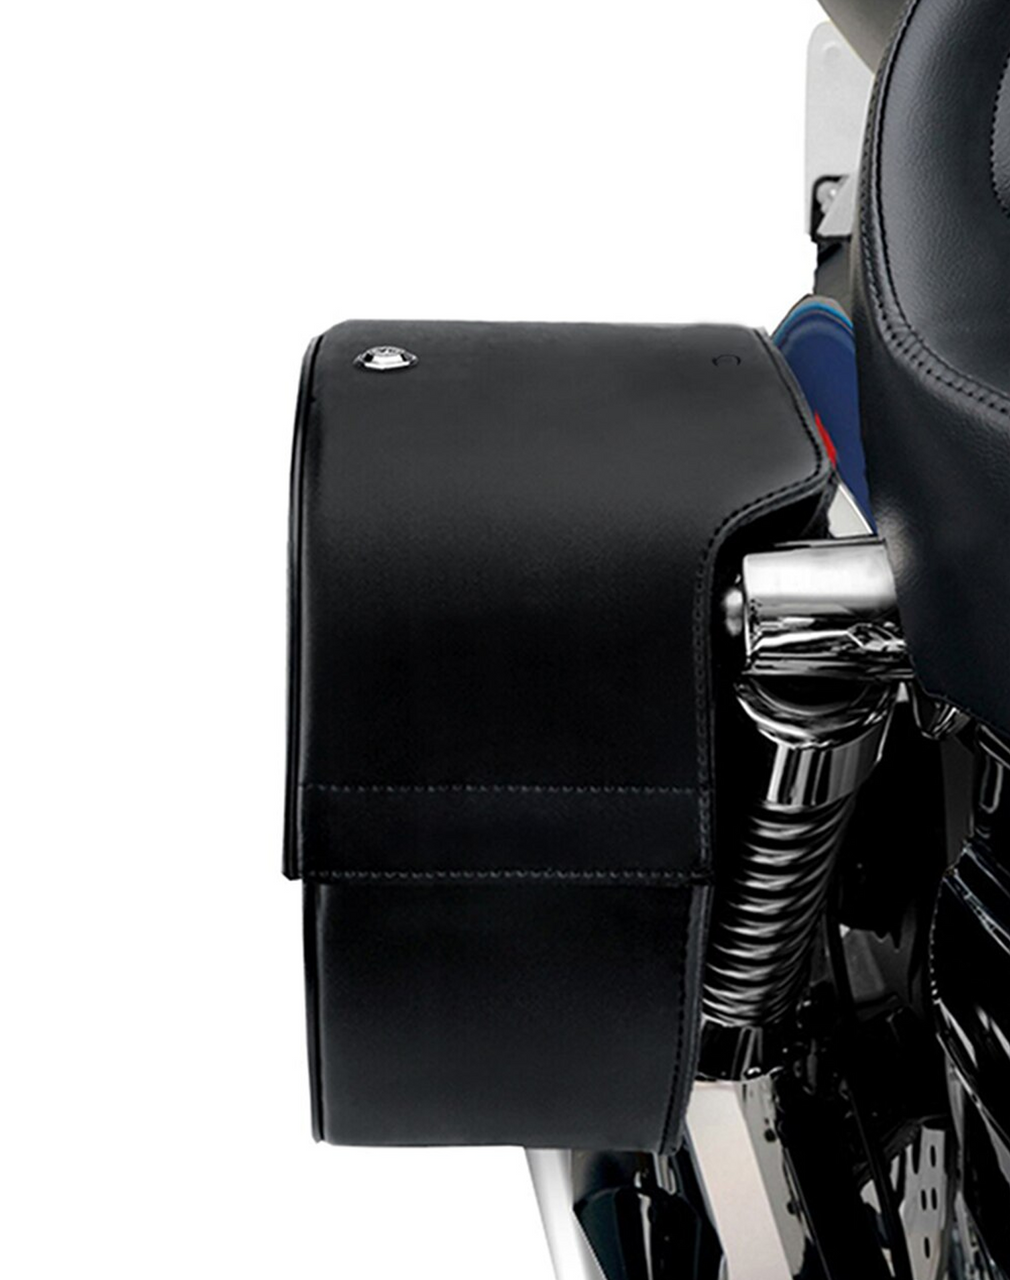 VikingBags Battlecry Medium Shock Cutout Leather Motorcycle Saddlebags For Harley Sportster Super Low 1200T Key Lockable View